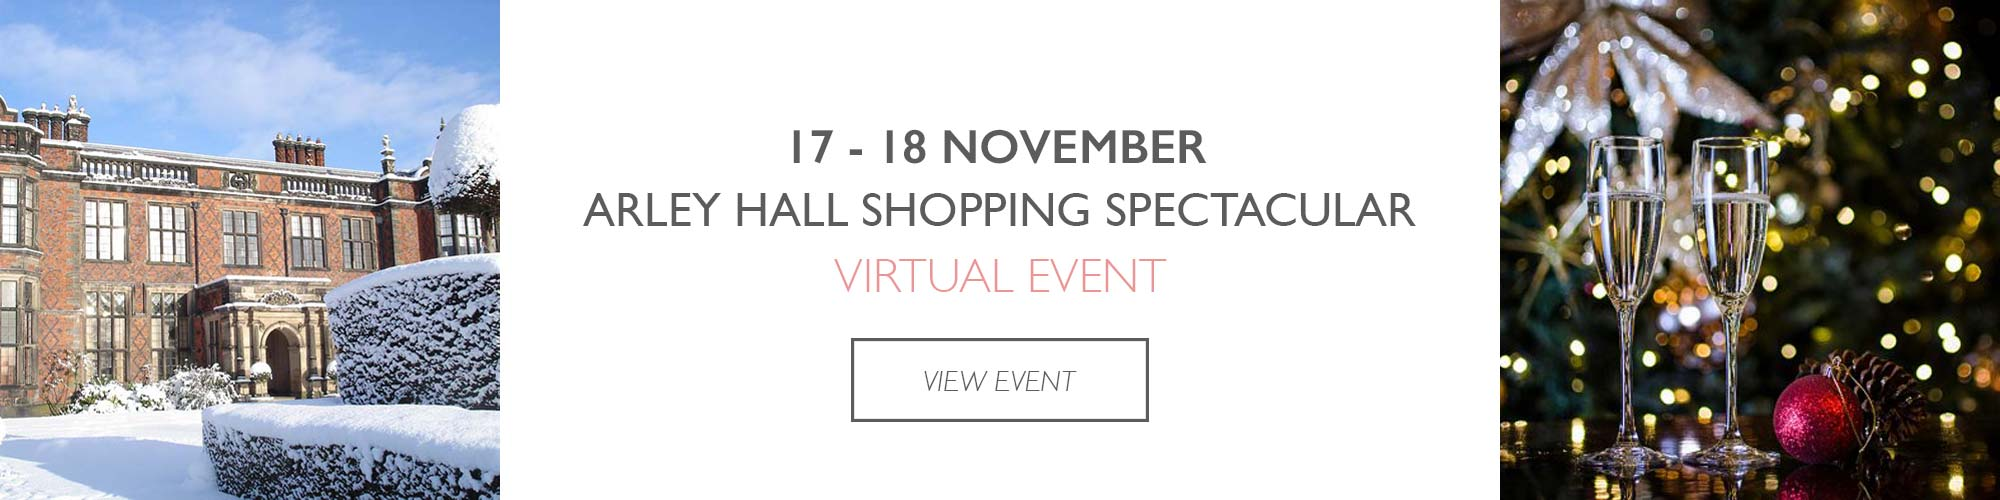 arley hall shopping spectacular virtual event dates 2020